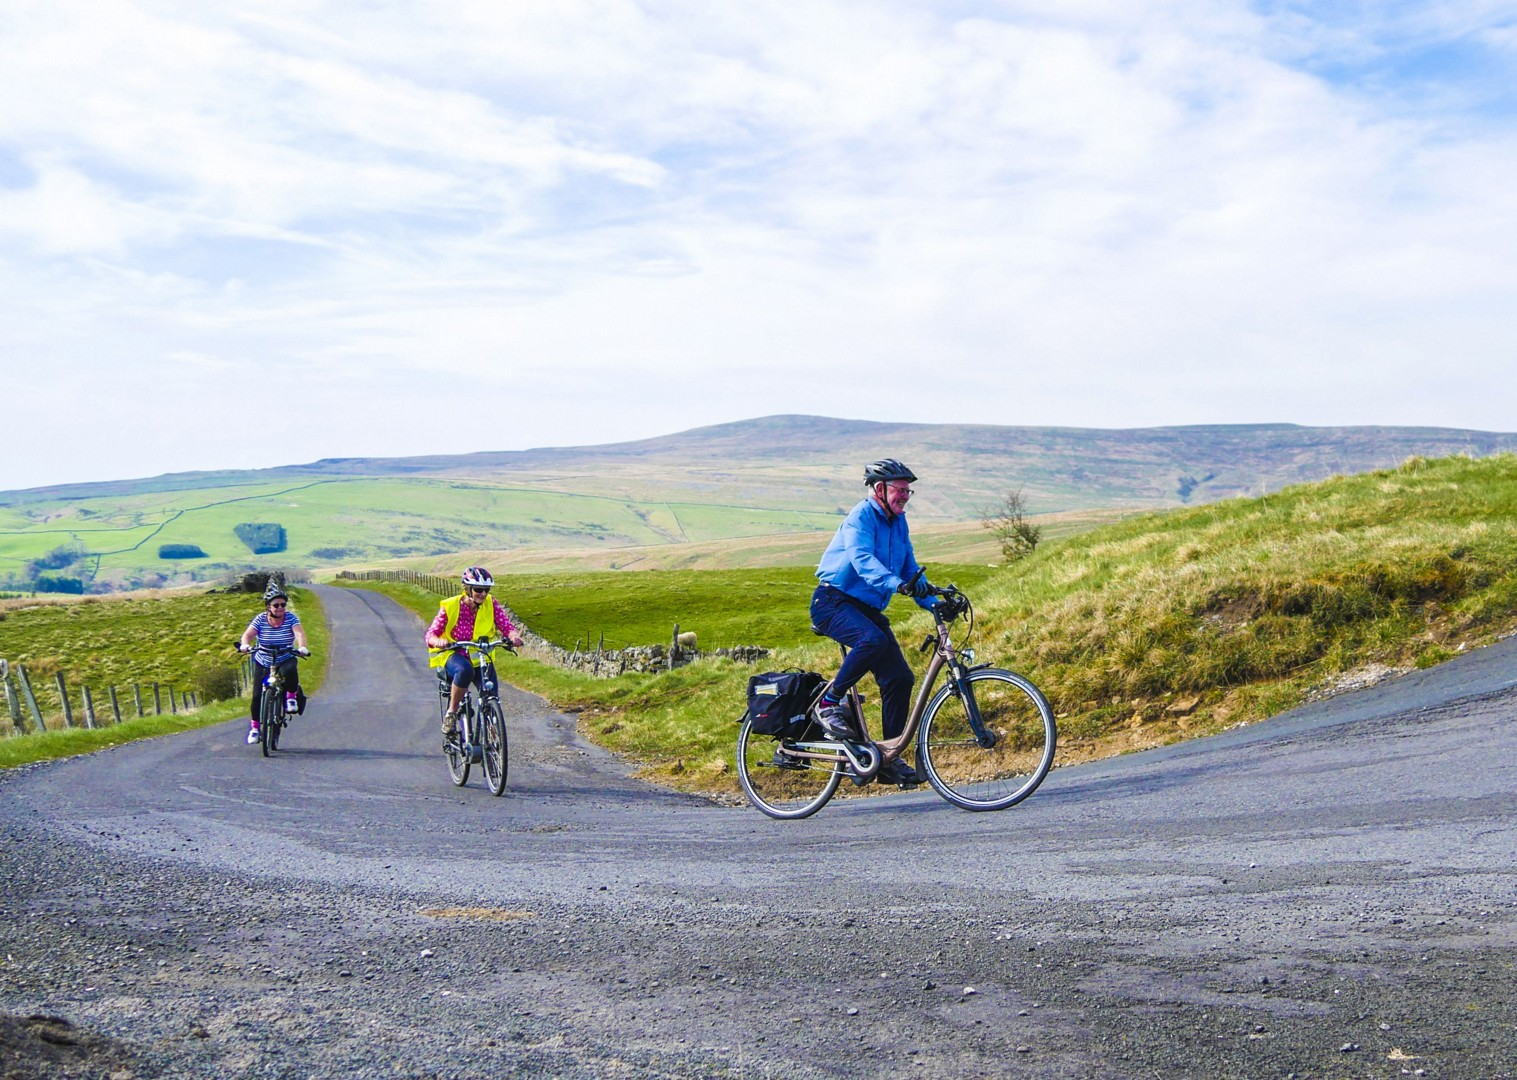 tour-for-all-ages-skedaddle-england-bike-holiday-amazing-experiences.jpg - UK - C2C - Coast to Coast 4 Days Cycling - Self-Guided Leisure Cycling Holiday - Leisure Cycling